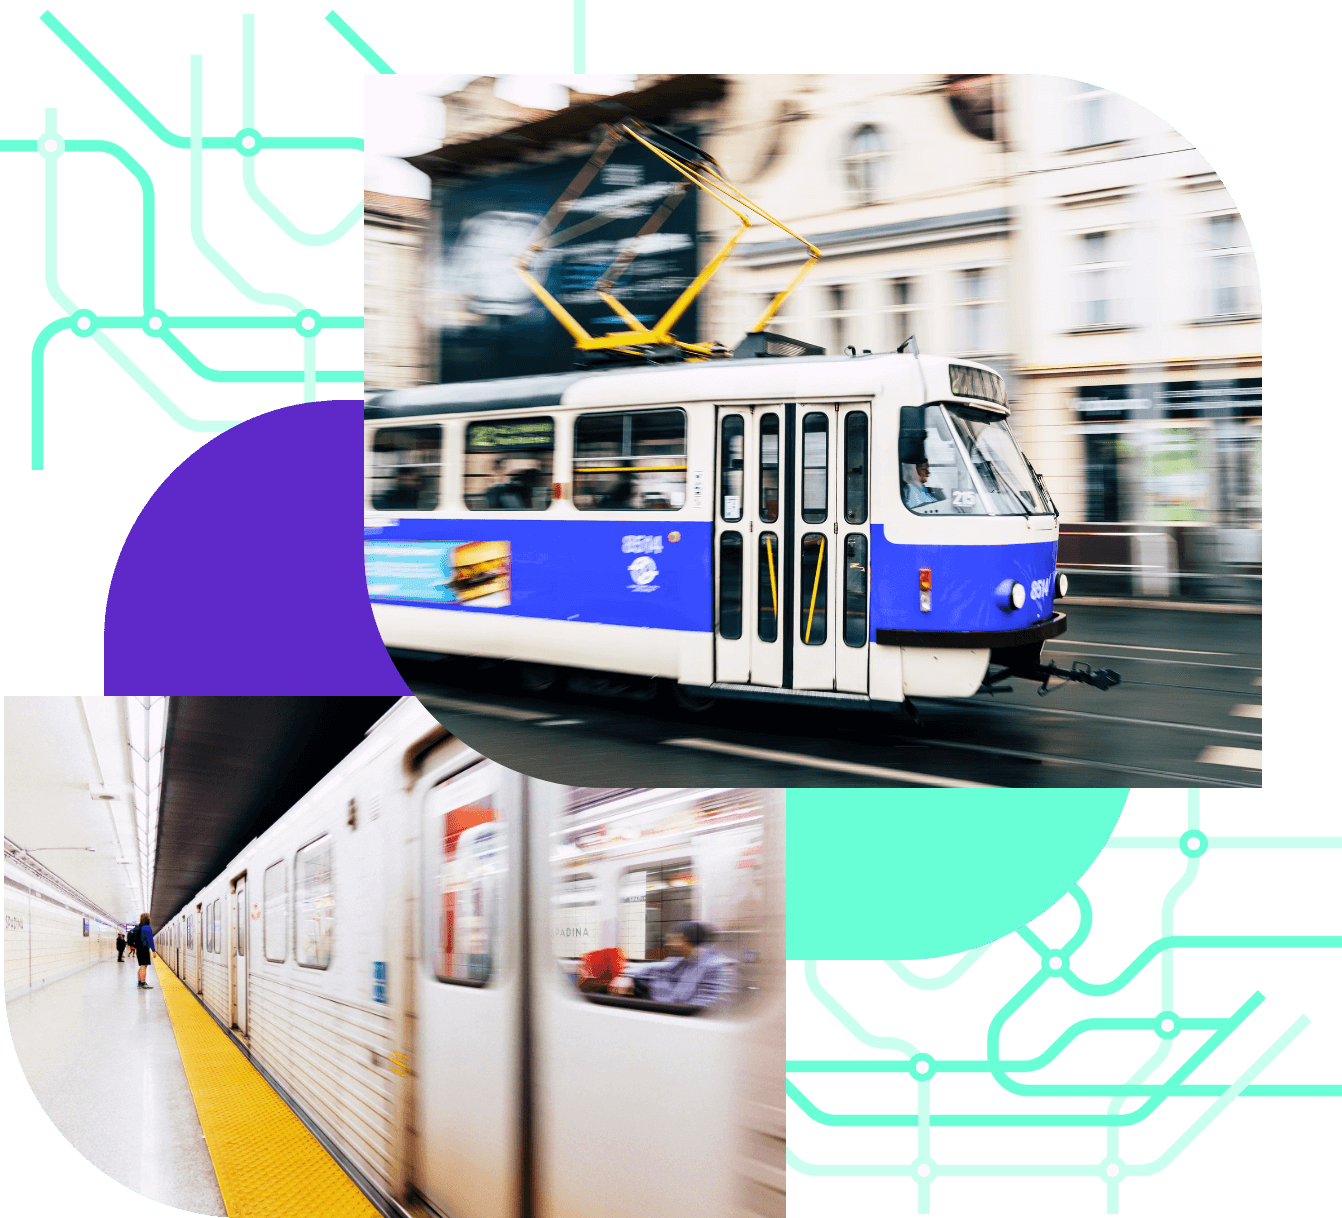 Electronic ticket in public transport system in your city/town